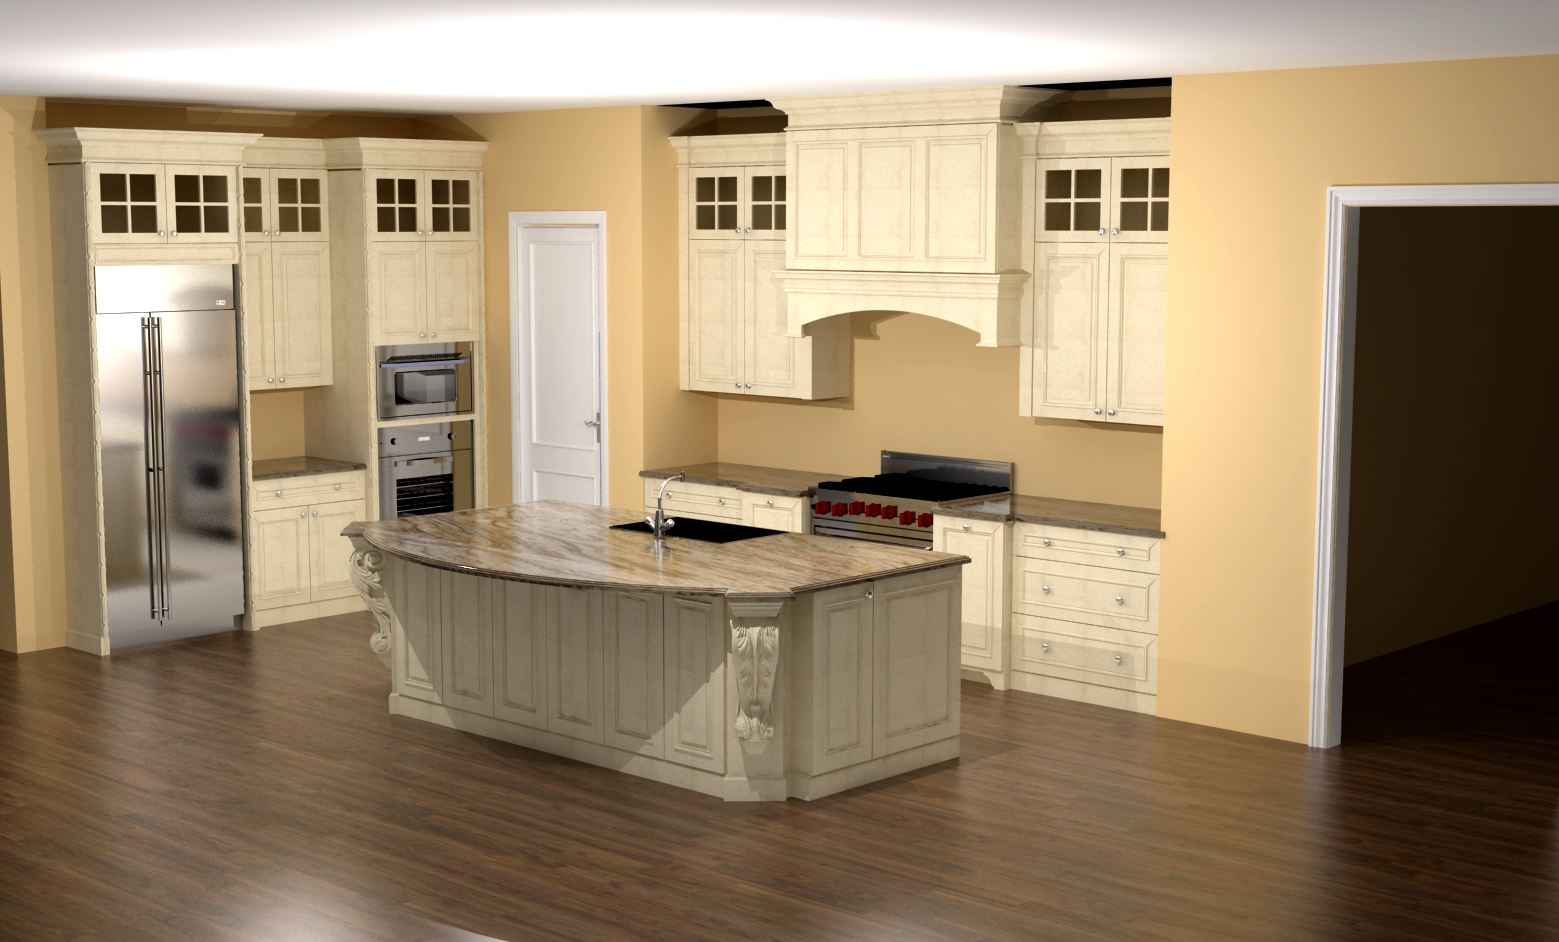 Glazed kitchen with large island corbels and custom hood | Nick ...